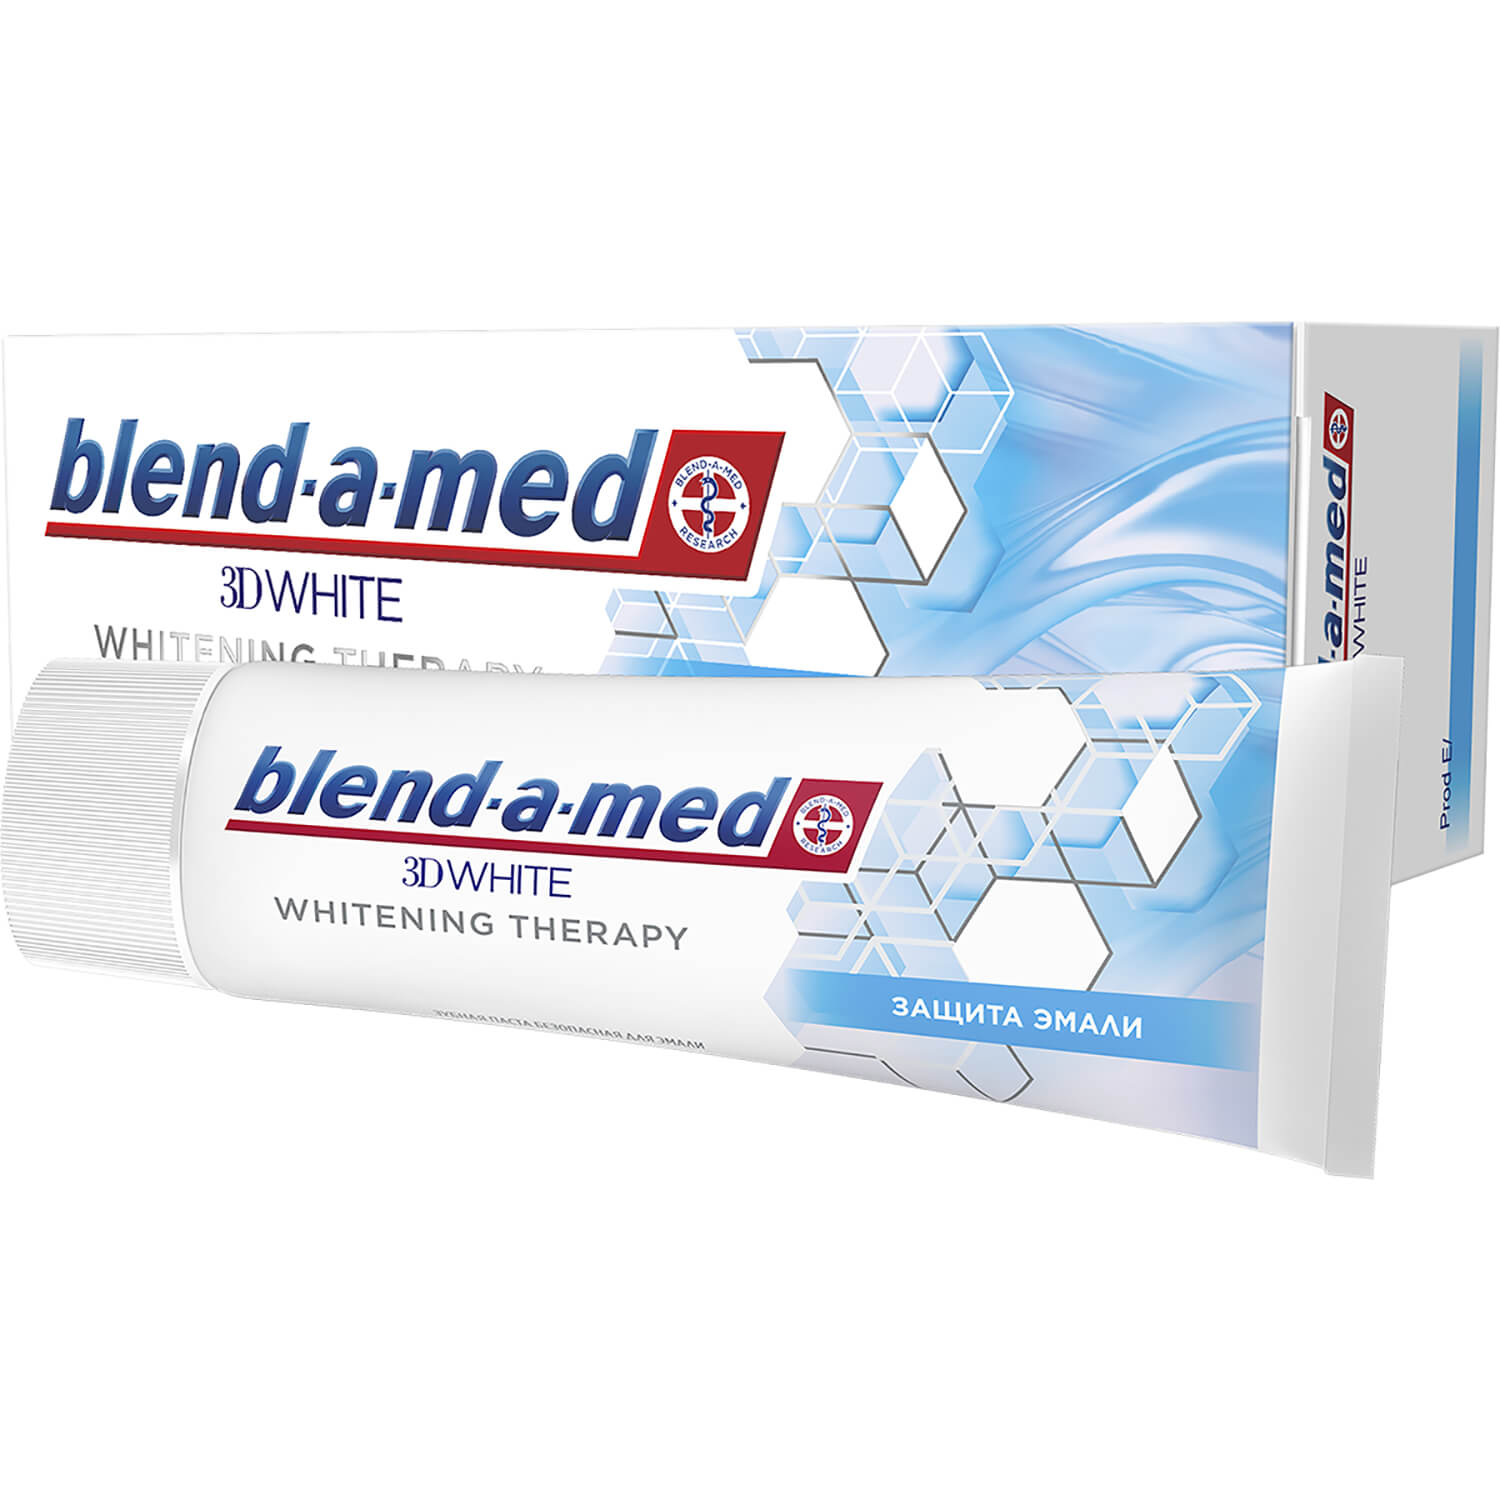 Паста зубная Blend-a-med 3D White Whitening Therapy Защита Эмали